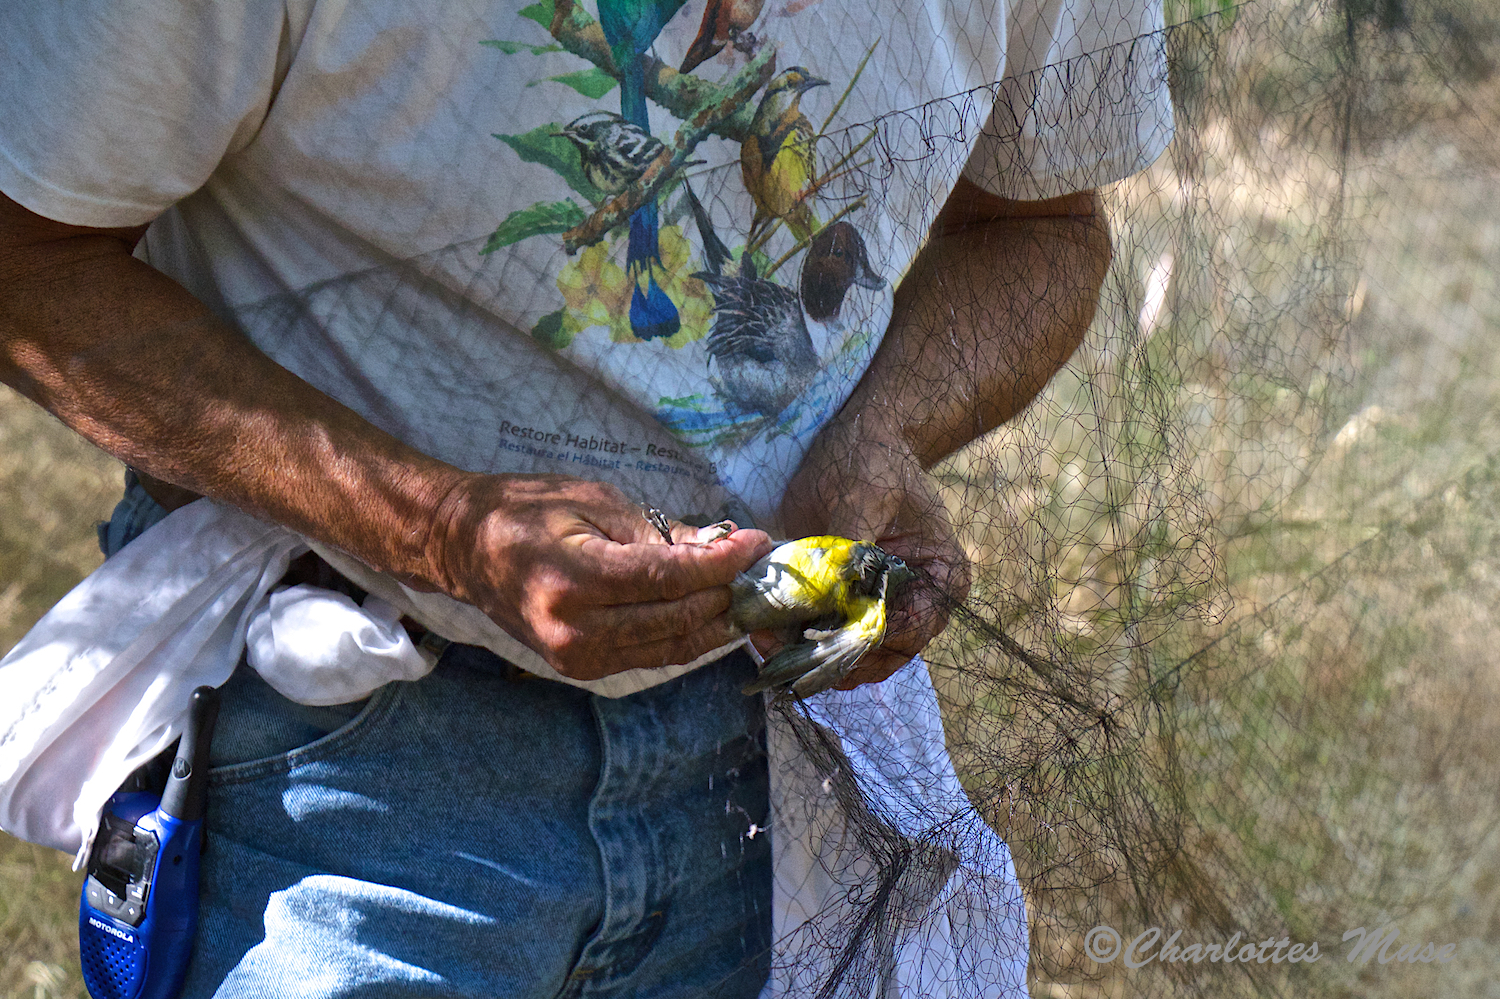 The trapped birds are carefully removed by trained volunteers and place into bags to be transported to a table where they are examined and, if not already banded, they are banded.